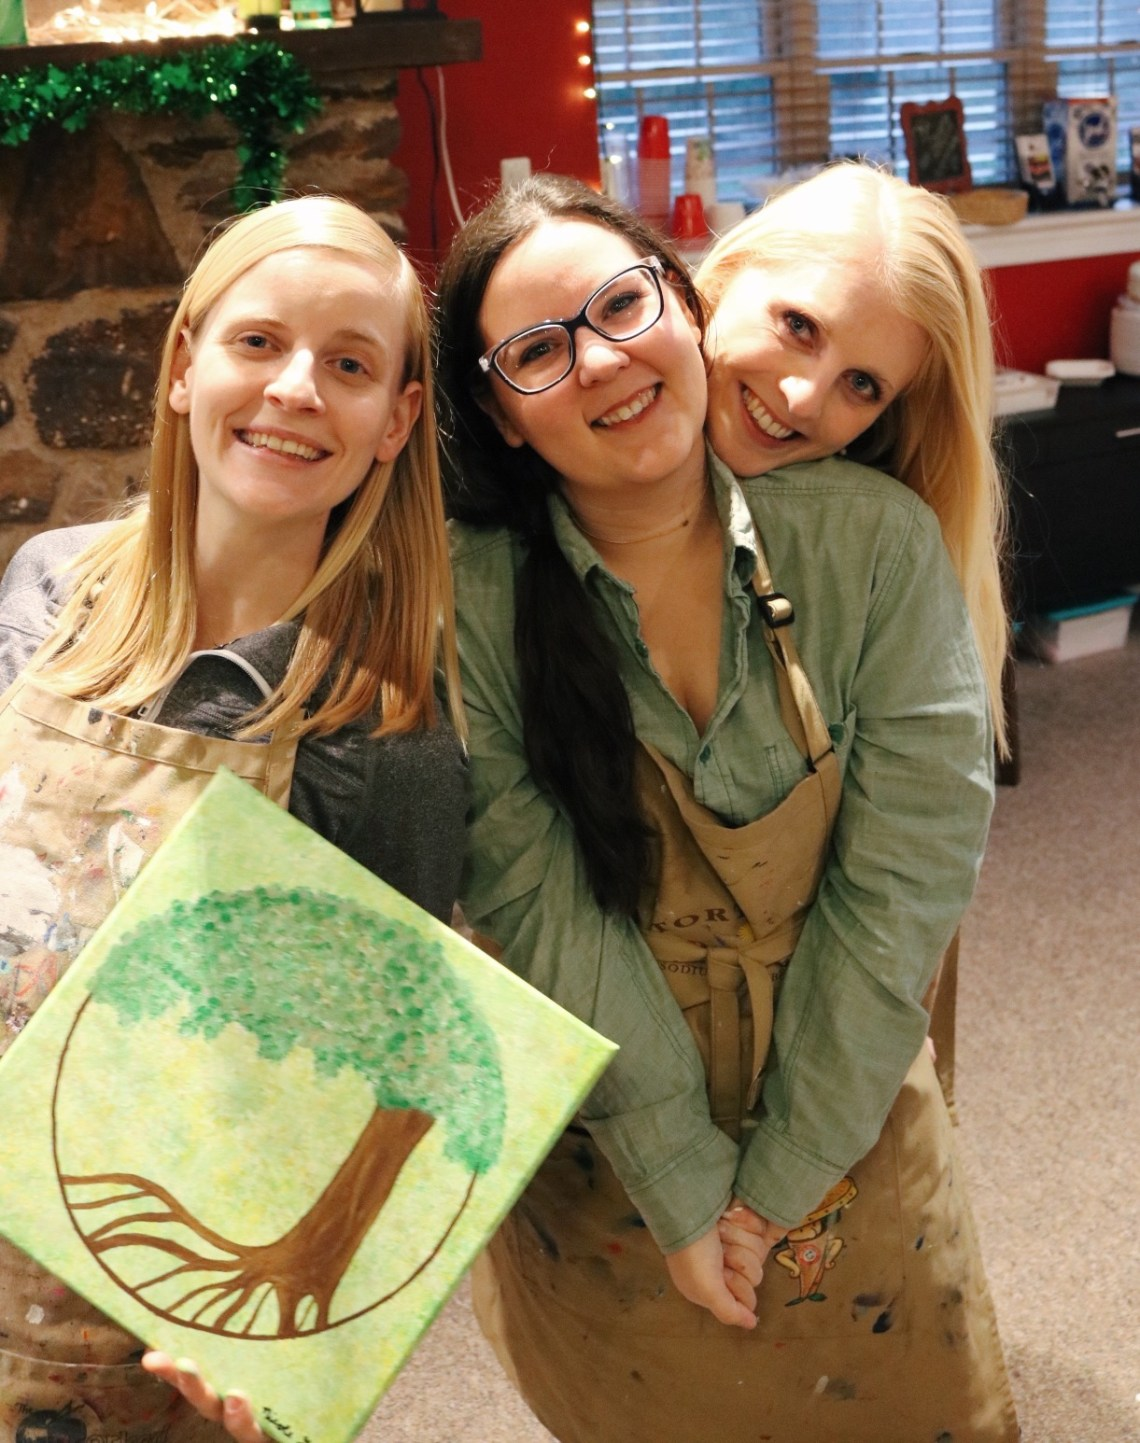 Me with my two friends smiling while my friend on the left holds up her finished tree of life painting